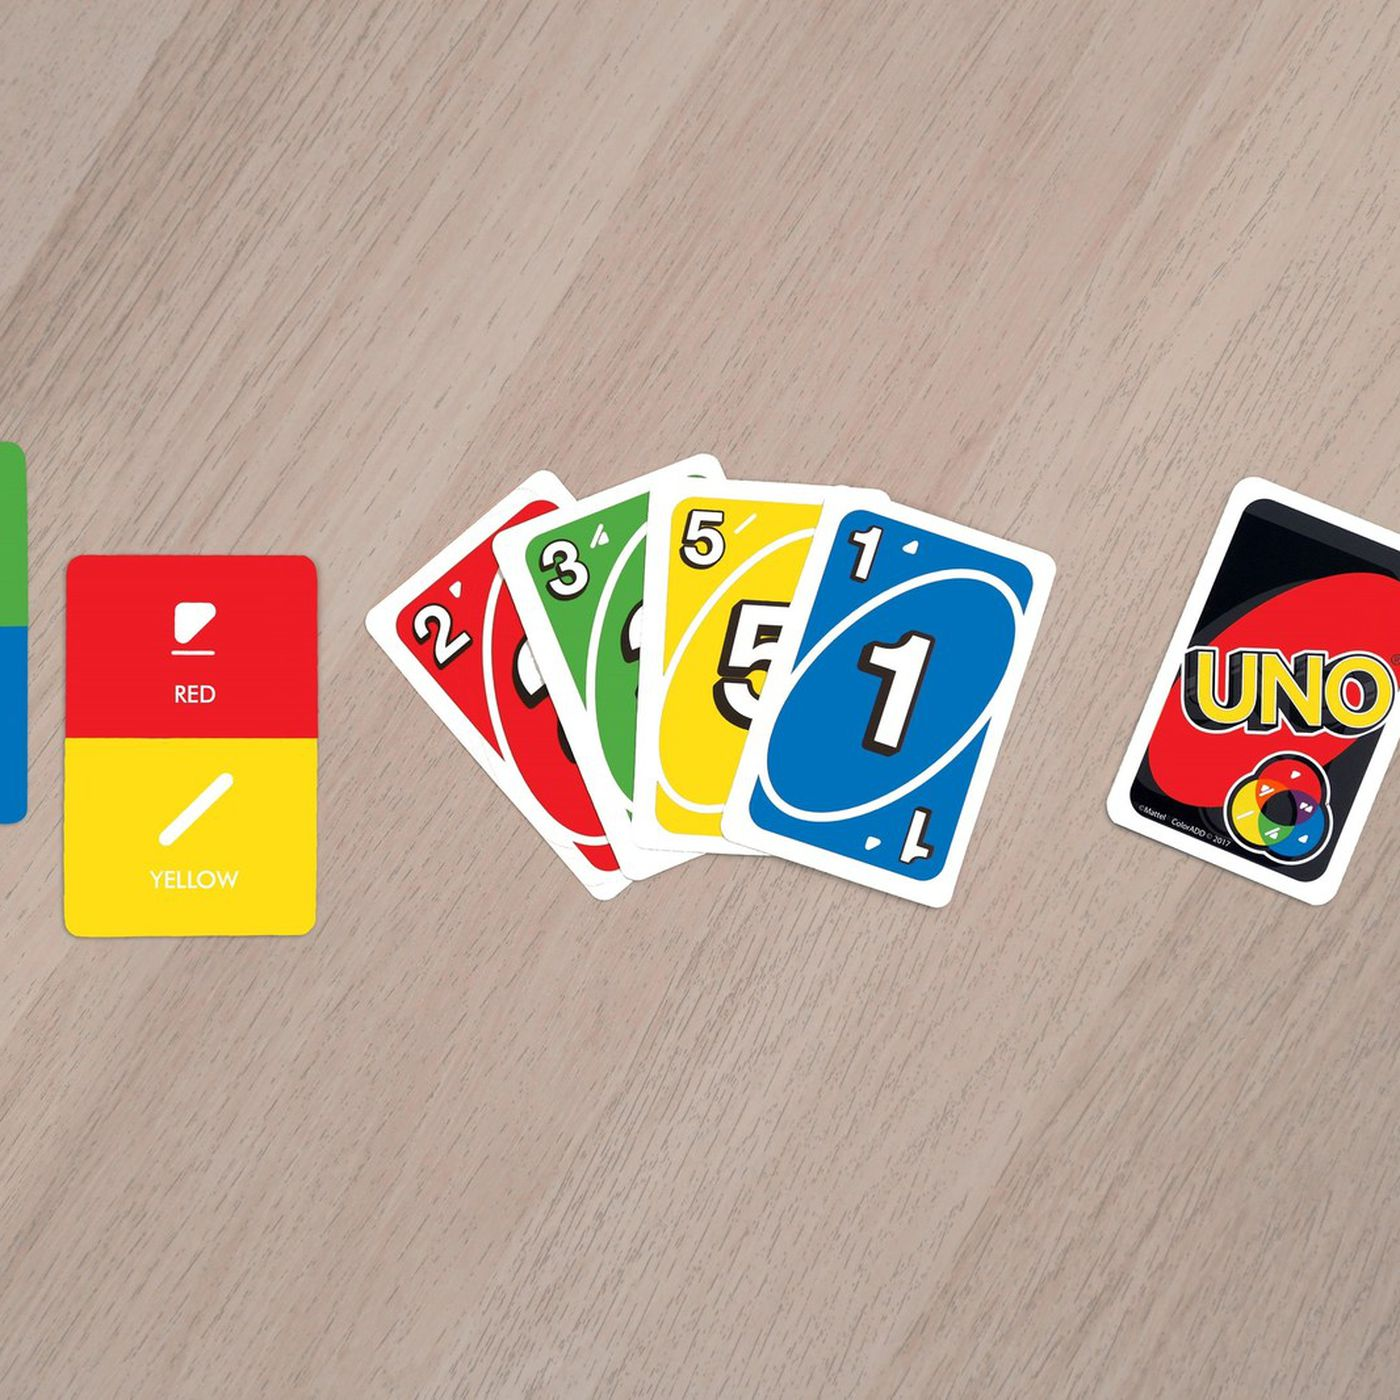 Uno is finally getting a colorblind-friendly edition - The Verge